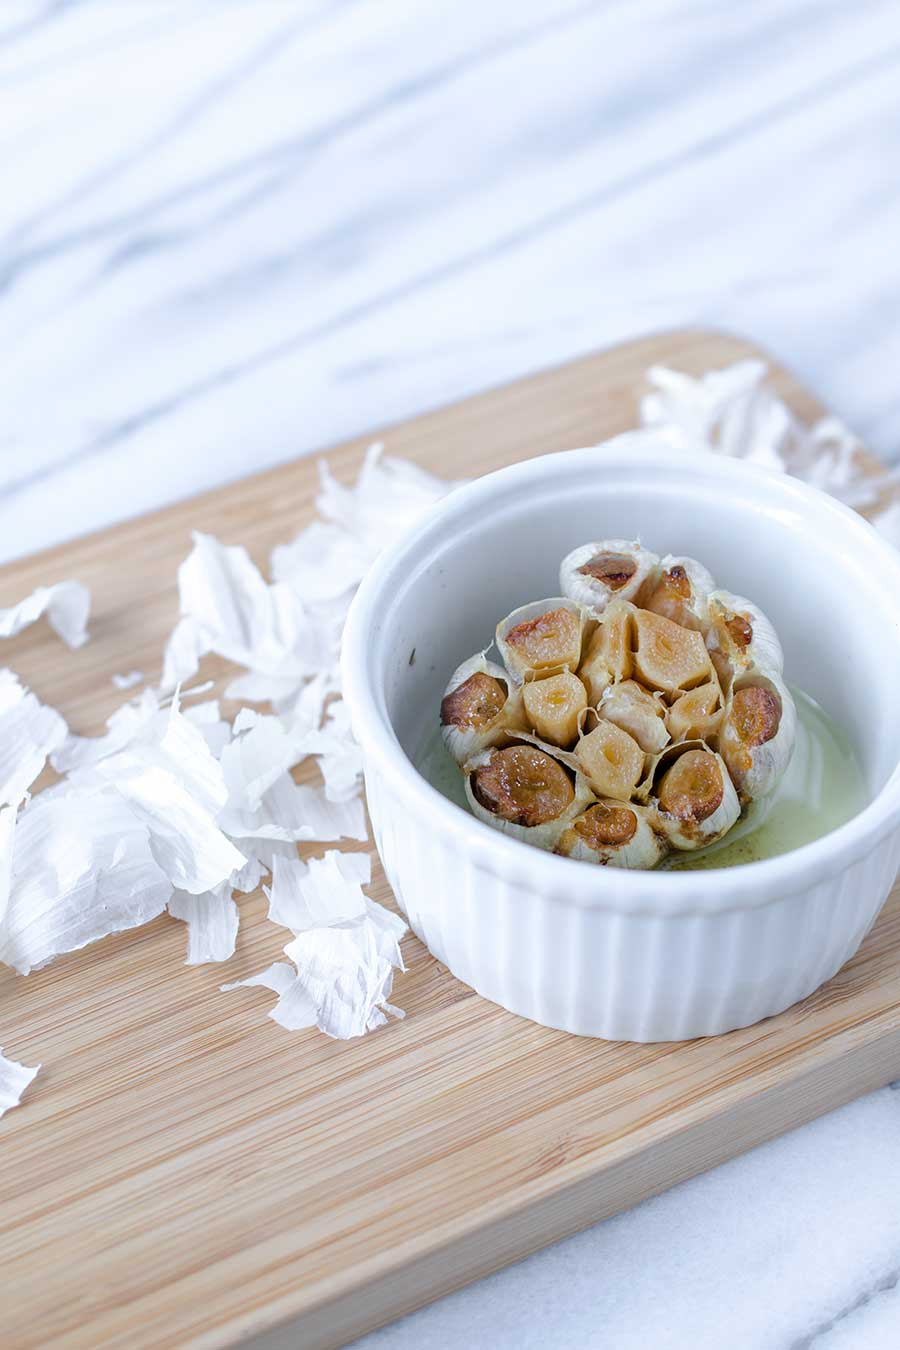 A photo of roasted garlic in a ramekin